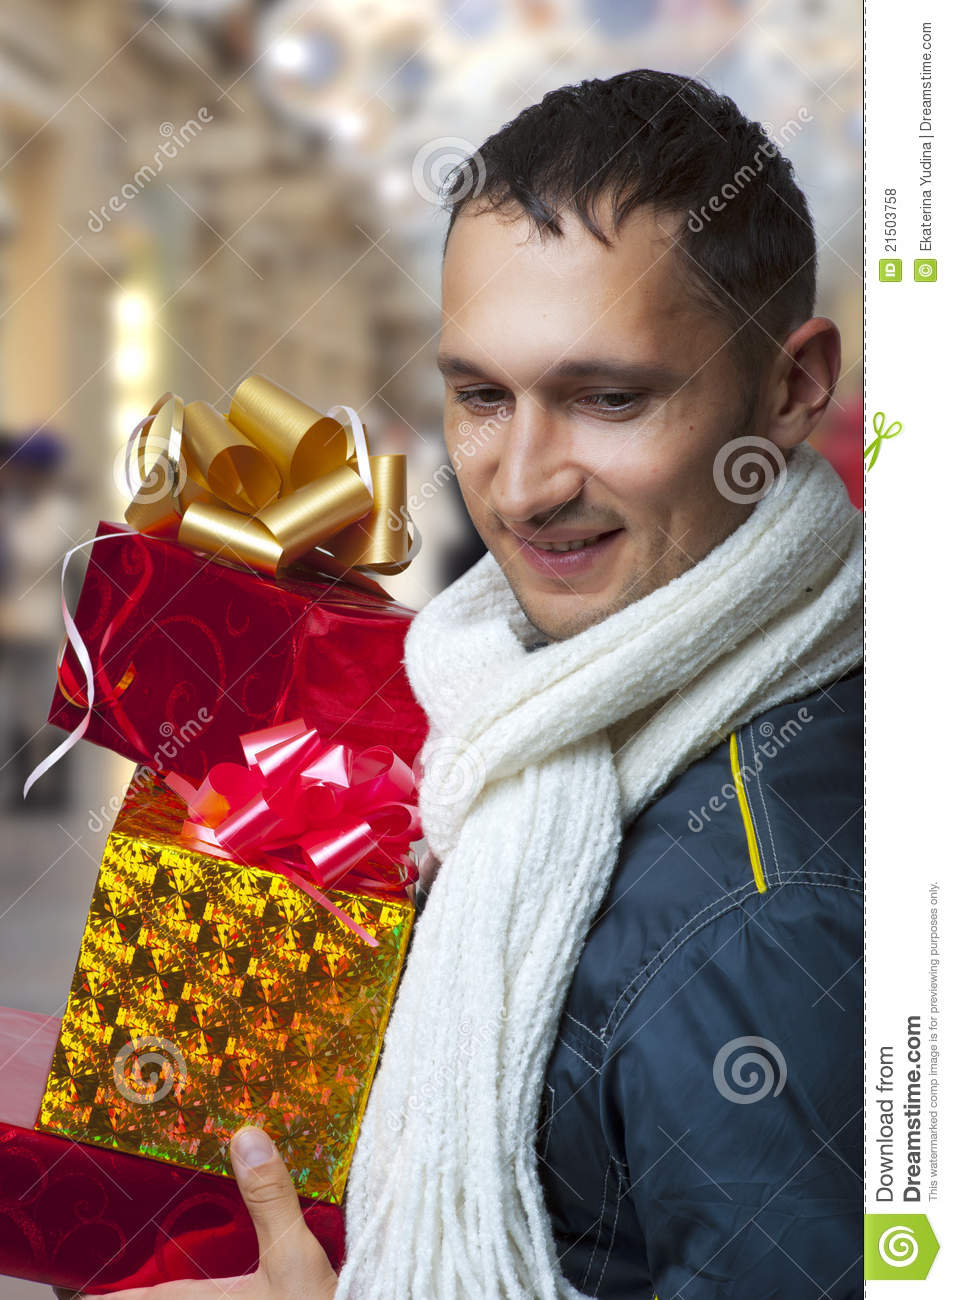 Young adult men gifts